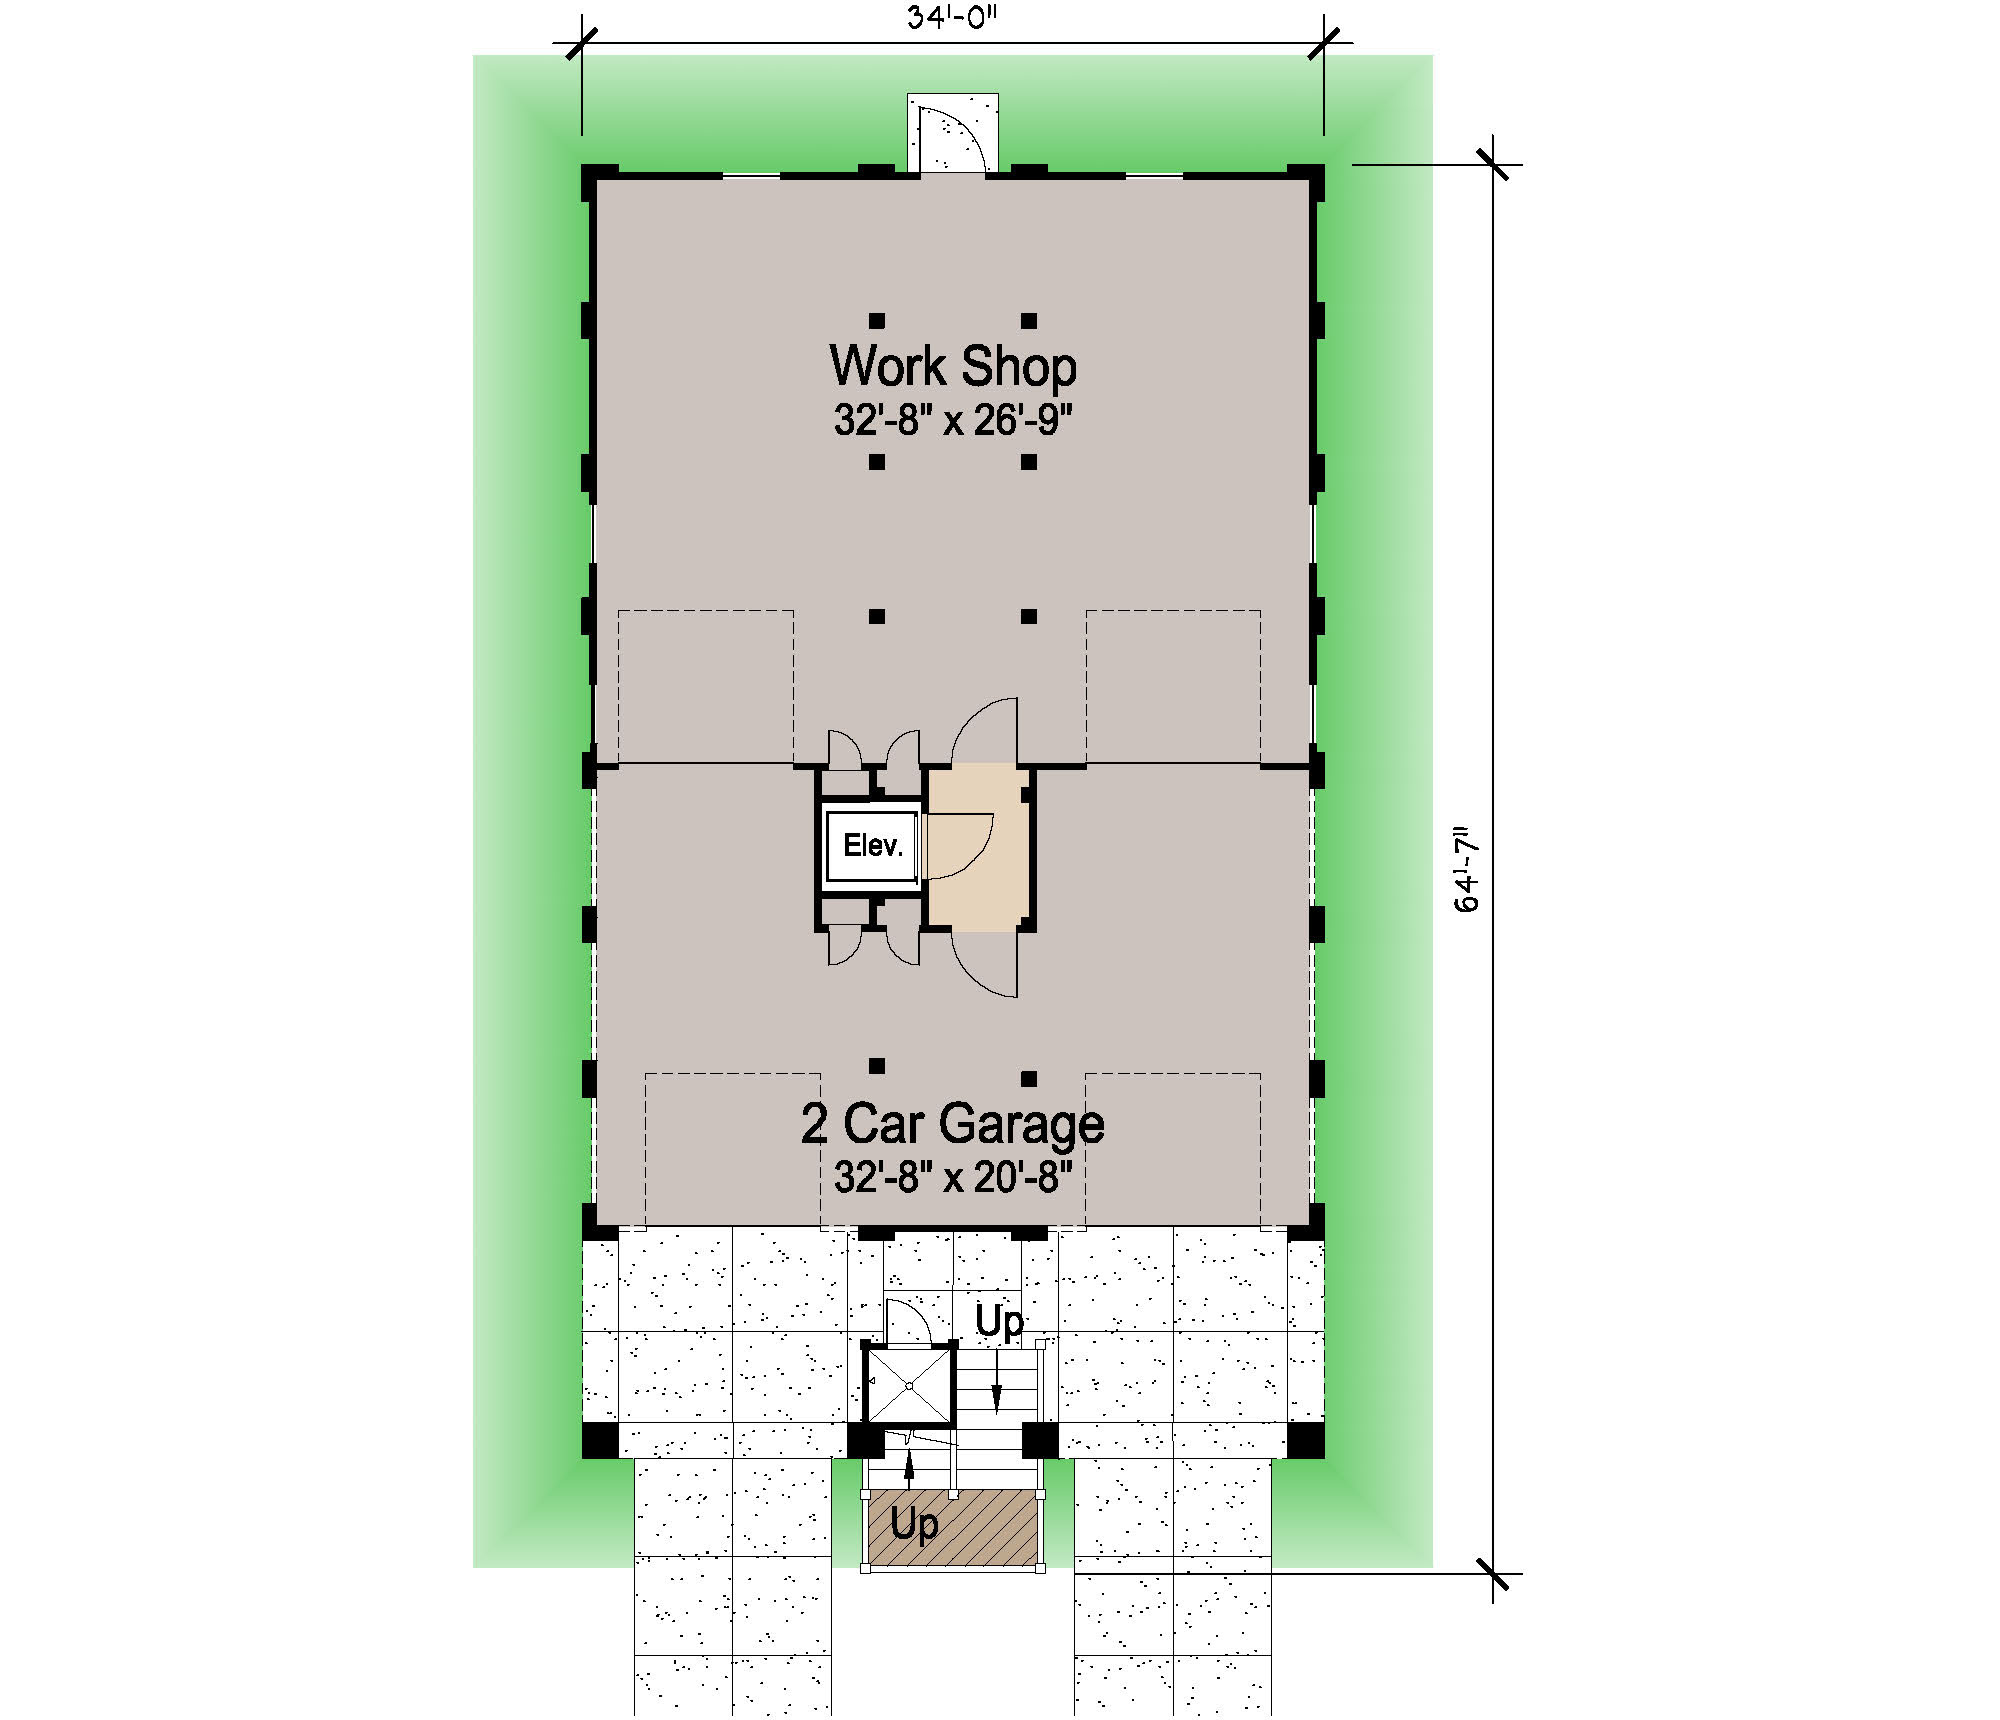 Porches cottage piling foundation roof deck 2900 sf for Piling foundation house plans